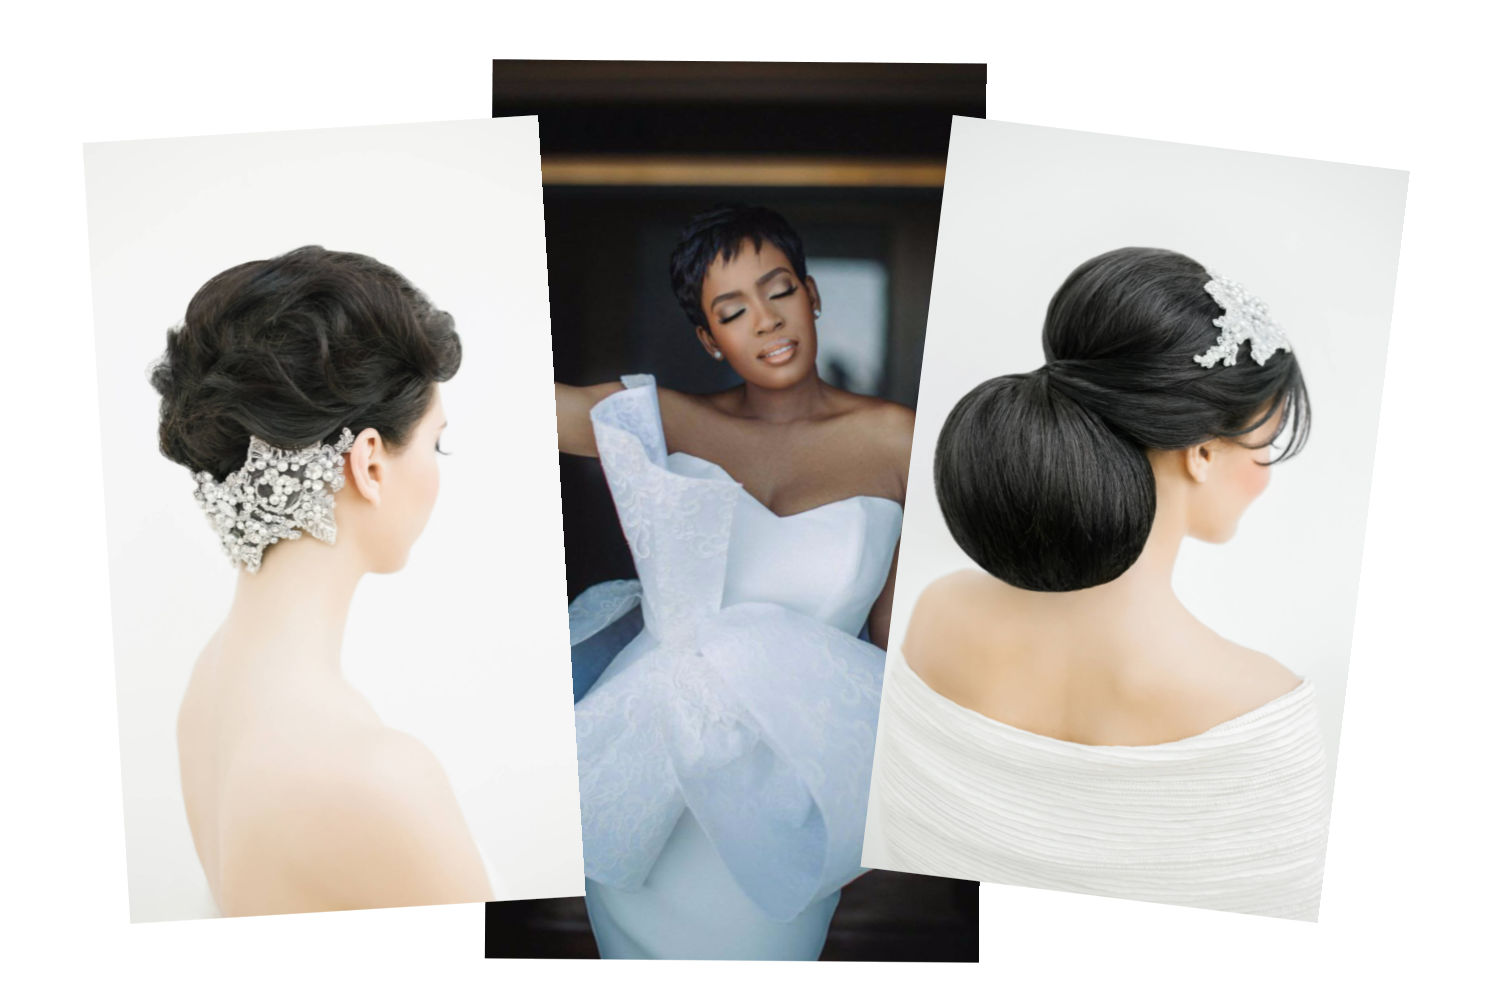 40 Perfete Wedding Hairstyles You Should Totally Recreate Perfete